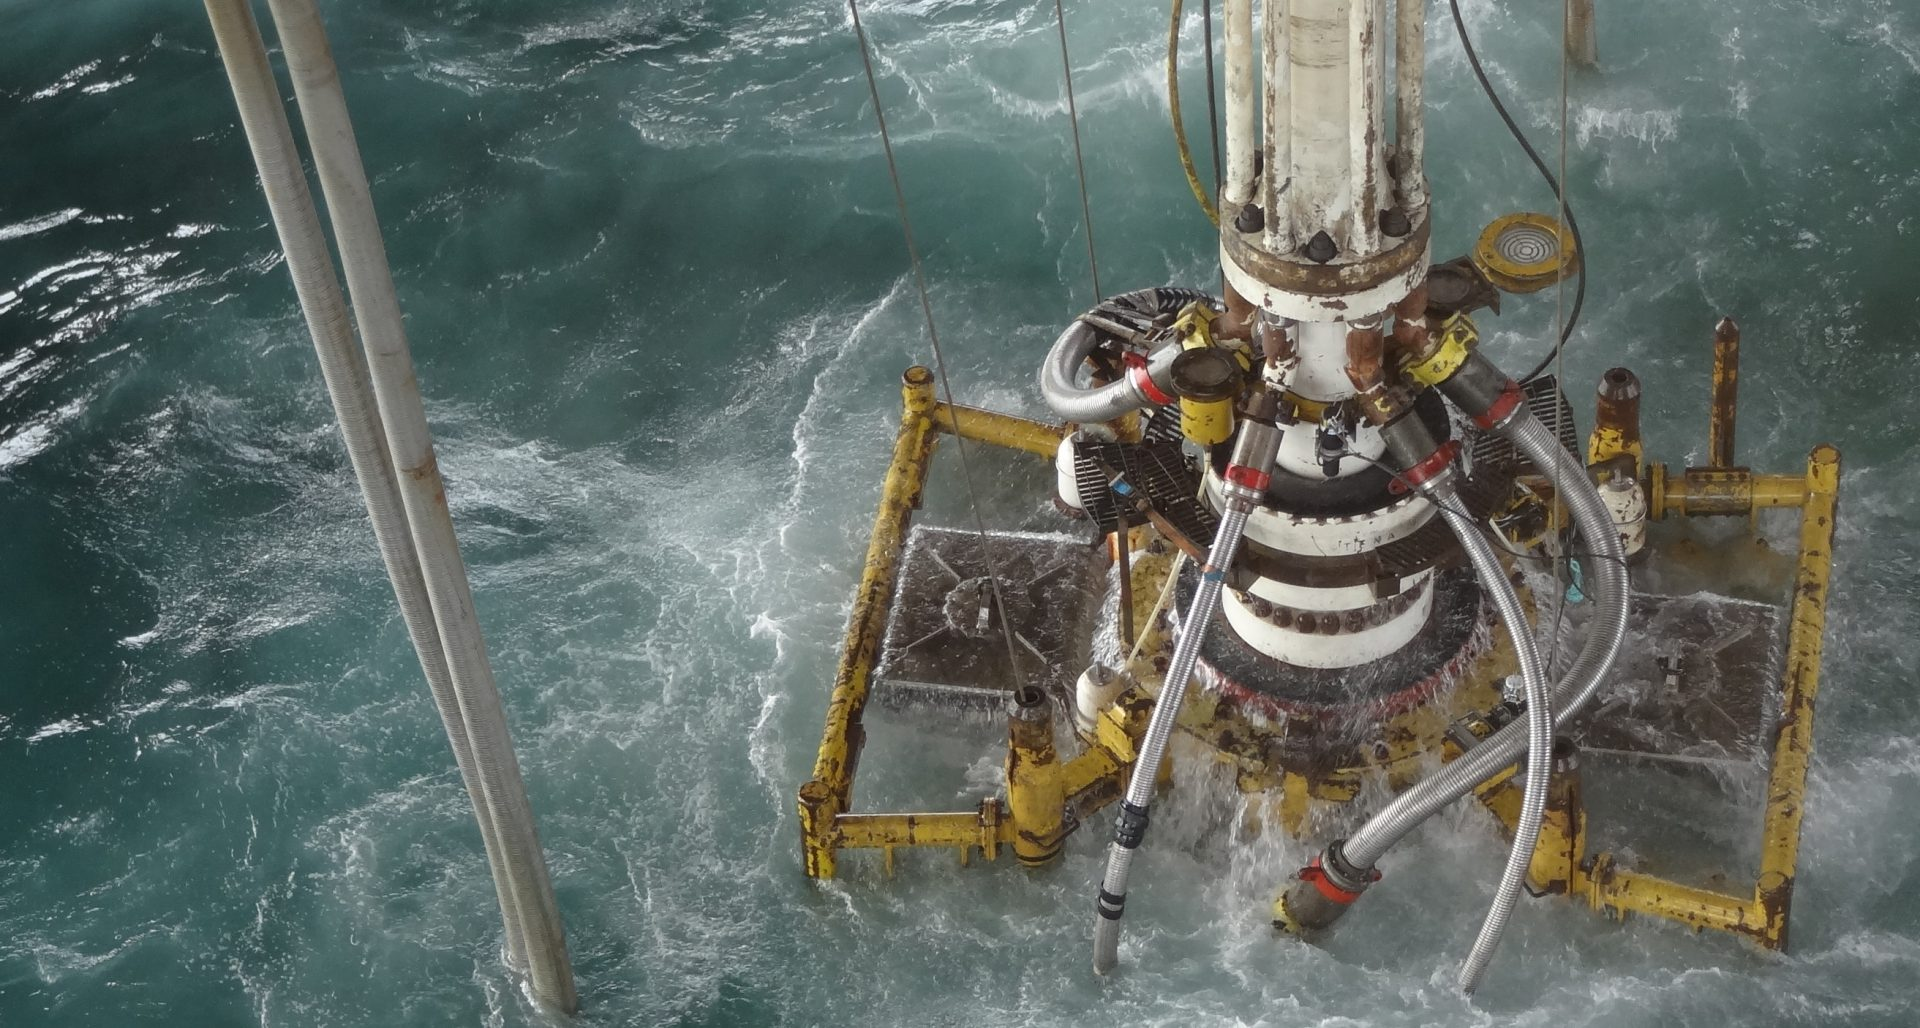 4Subsea integrity monitoring